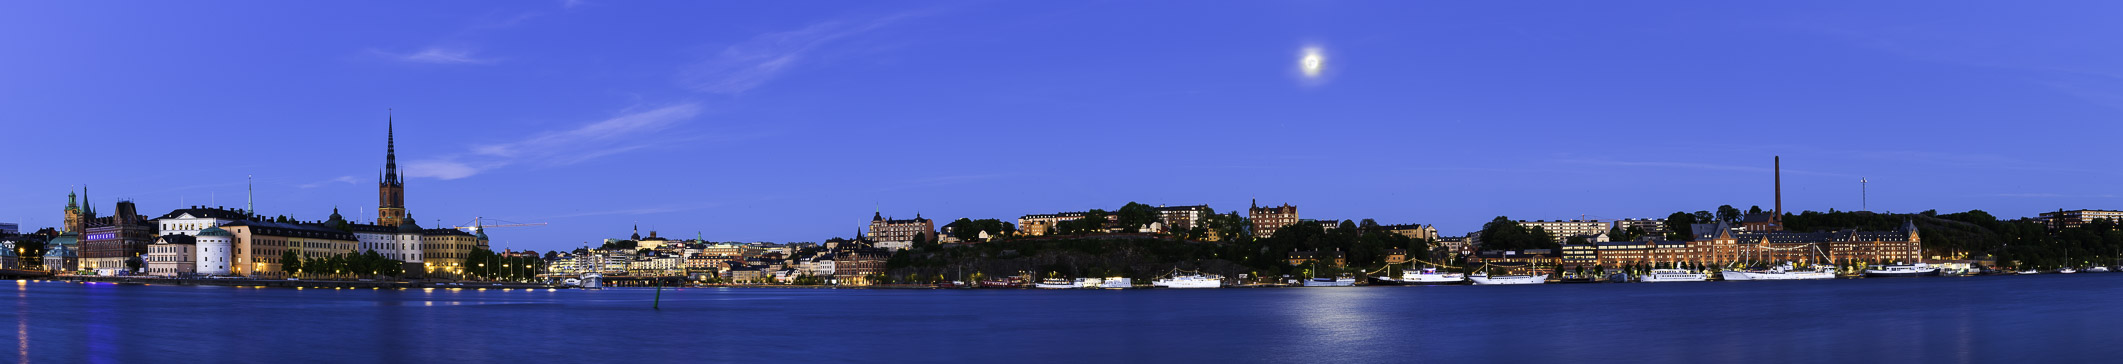 The ProPhoto RGB version of Moonrise, Stockholm, Sweden